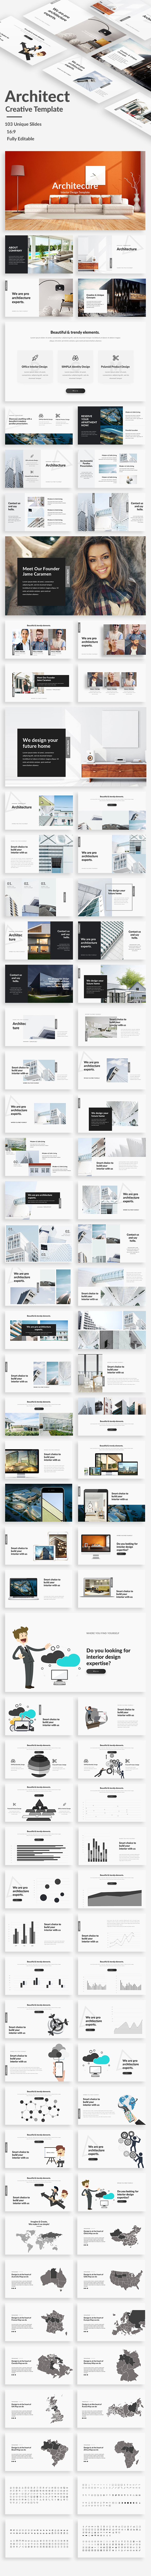 Architecture and Interior Design Google Slide - Google Slides Presentation Templates